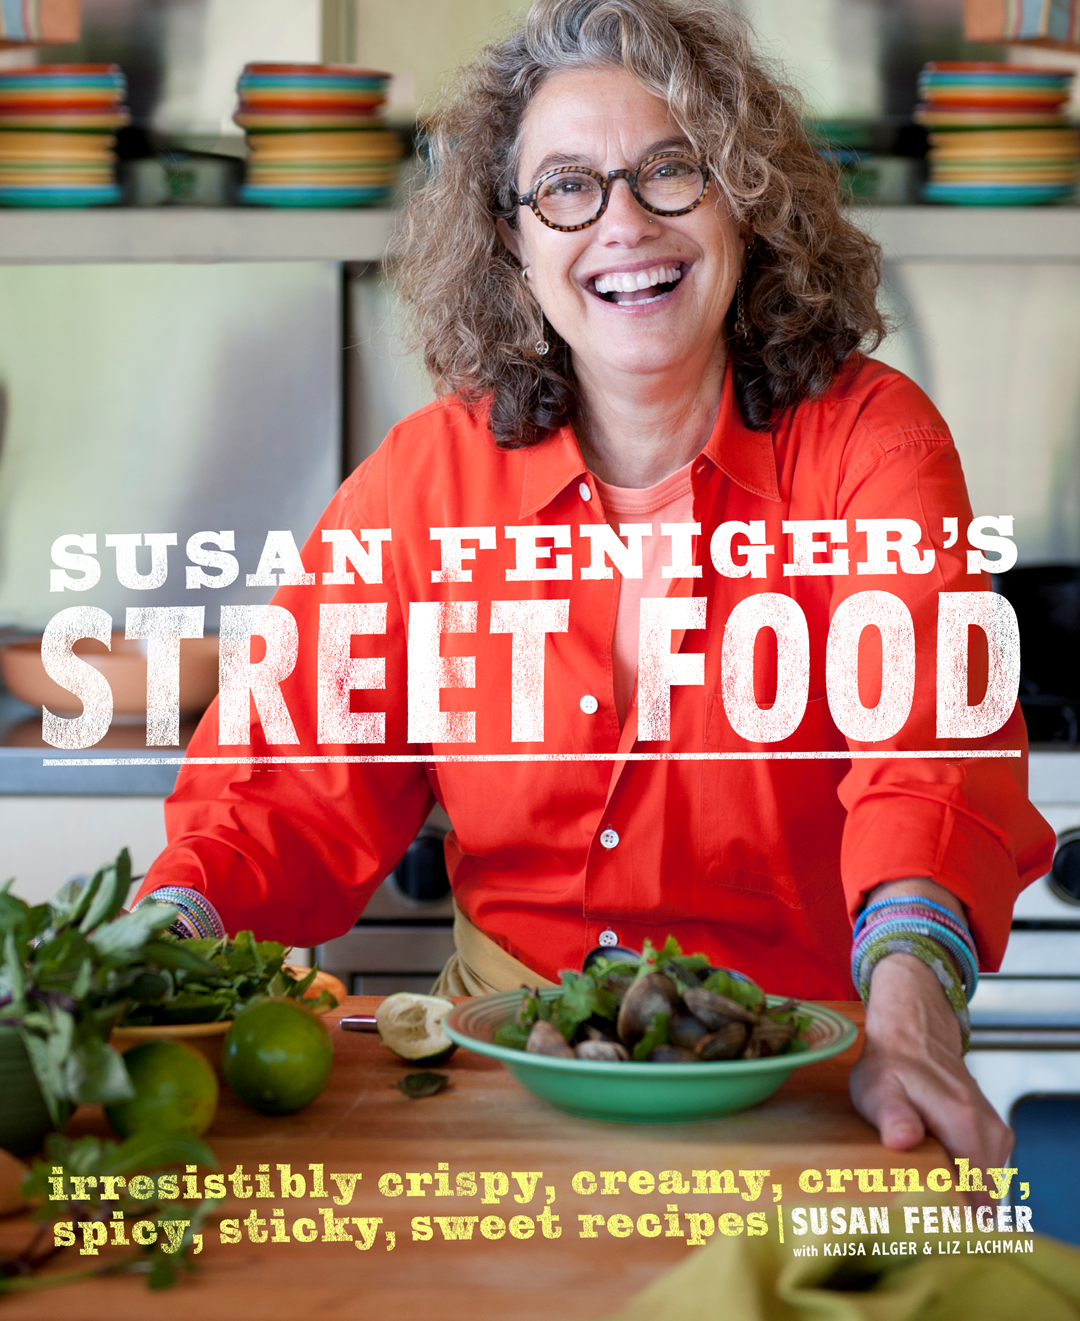 Border Grill's Susan Feniger takes people on a journey through different spices in her new book 'Street Food,' which features recipes from all over the globe. (Cover art courtesy of Random House.)